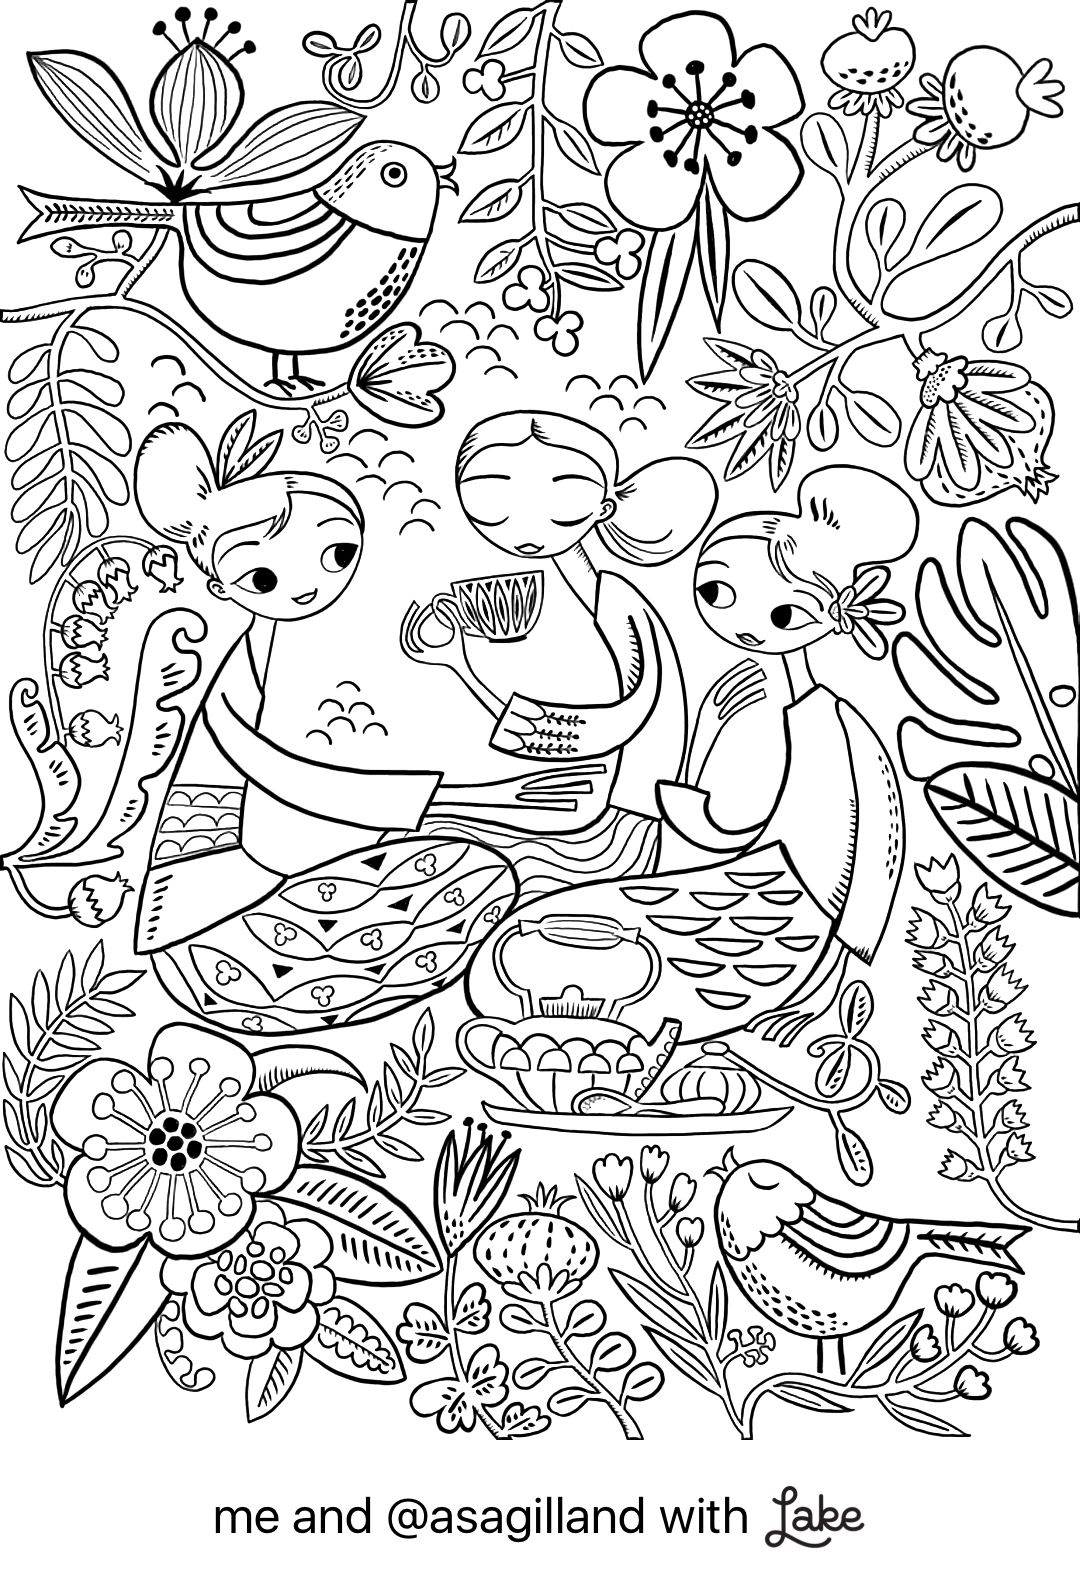 Coloring Page From Lake Coloring App Coloring Pages Coloring